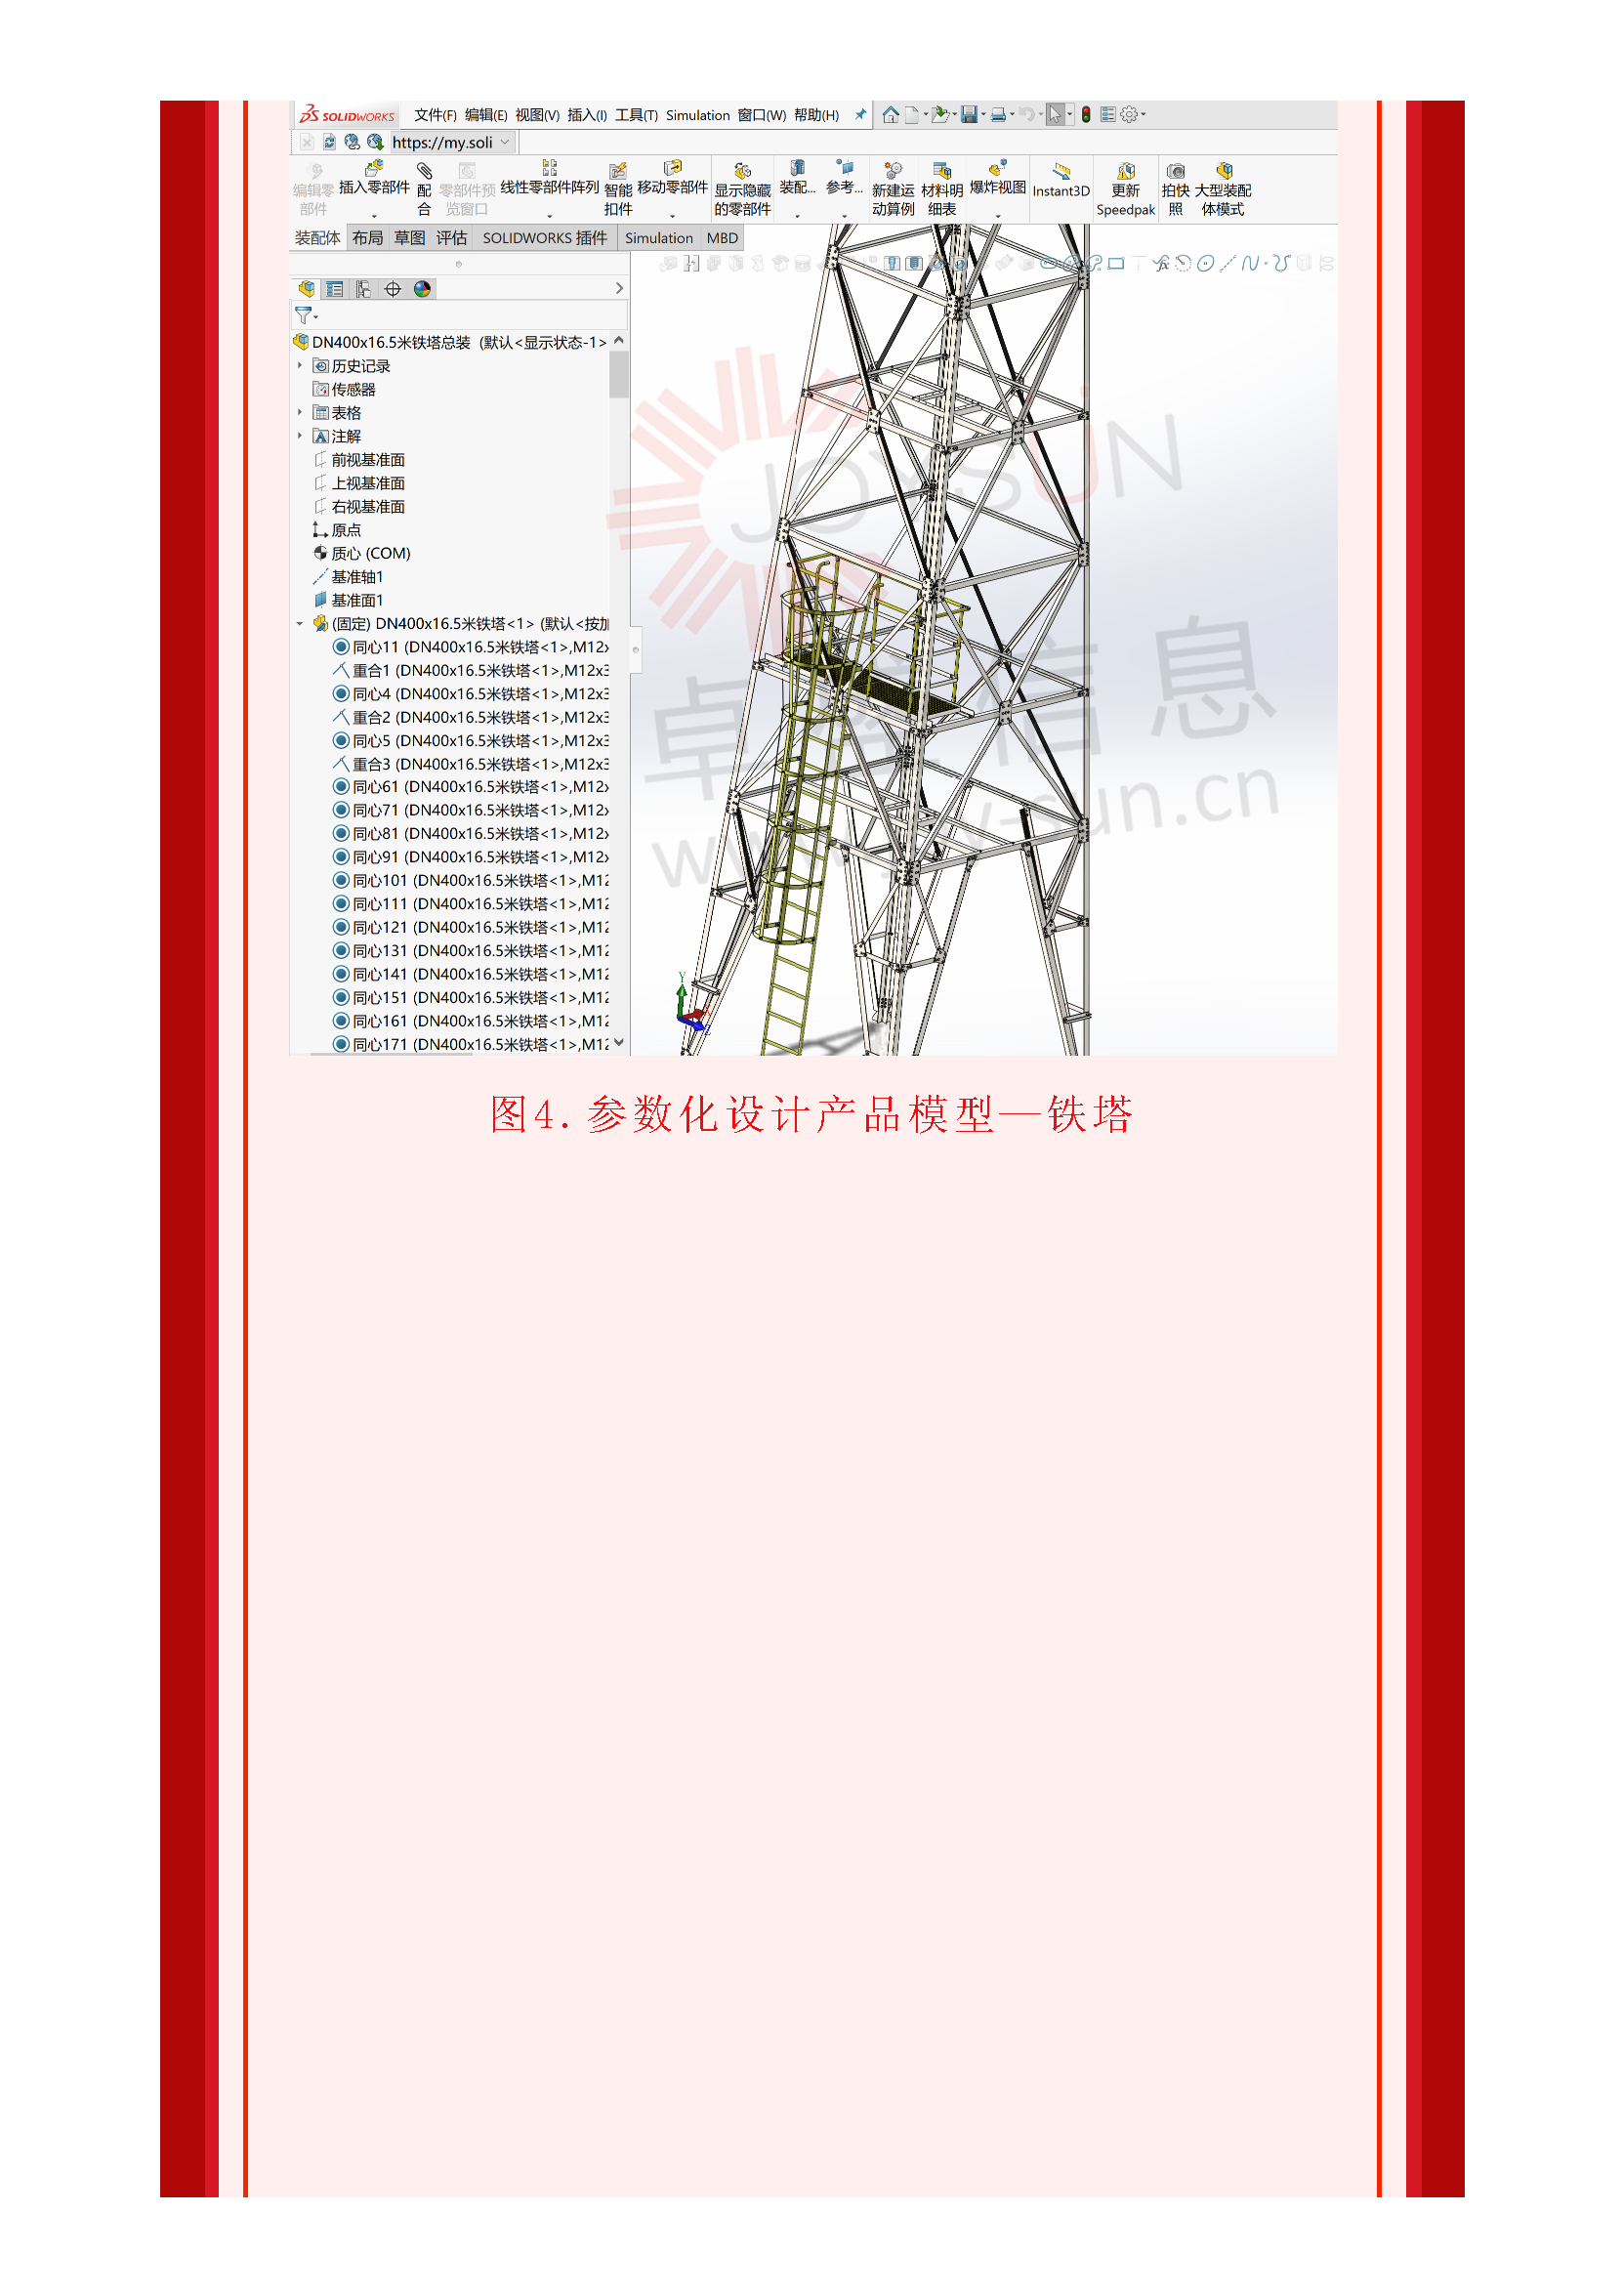 135editor_03041424_60407d0a640ba20210304142410_页面_06.png